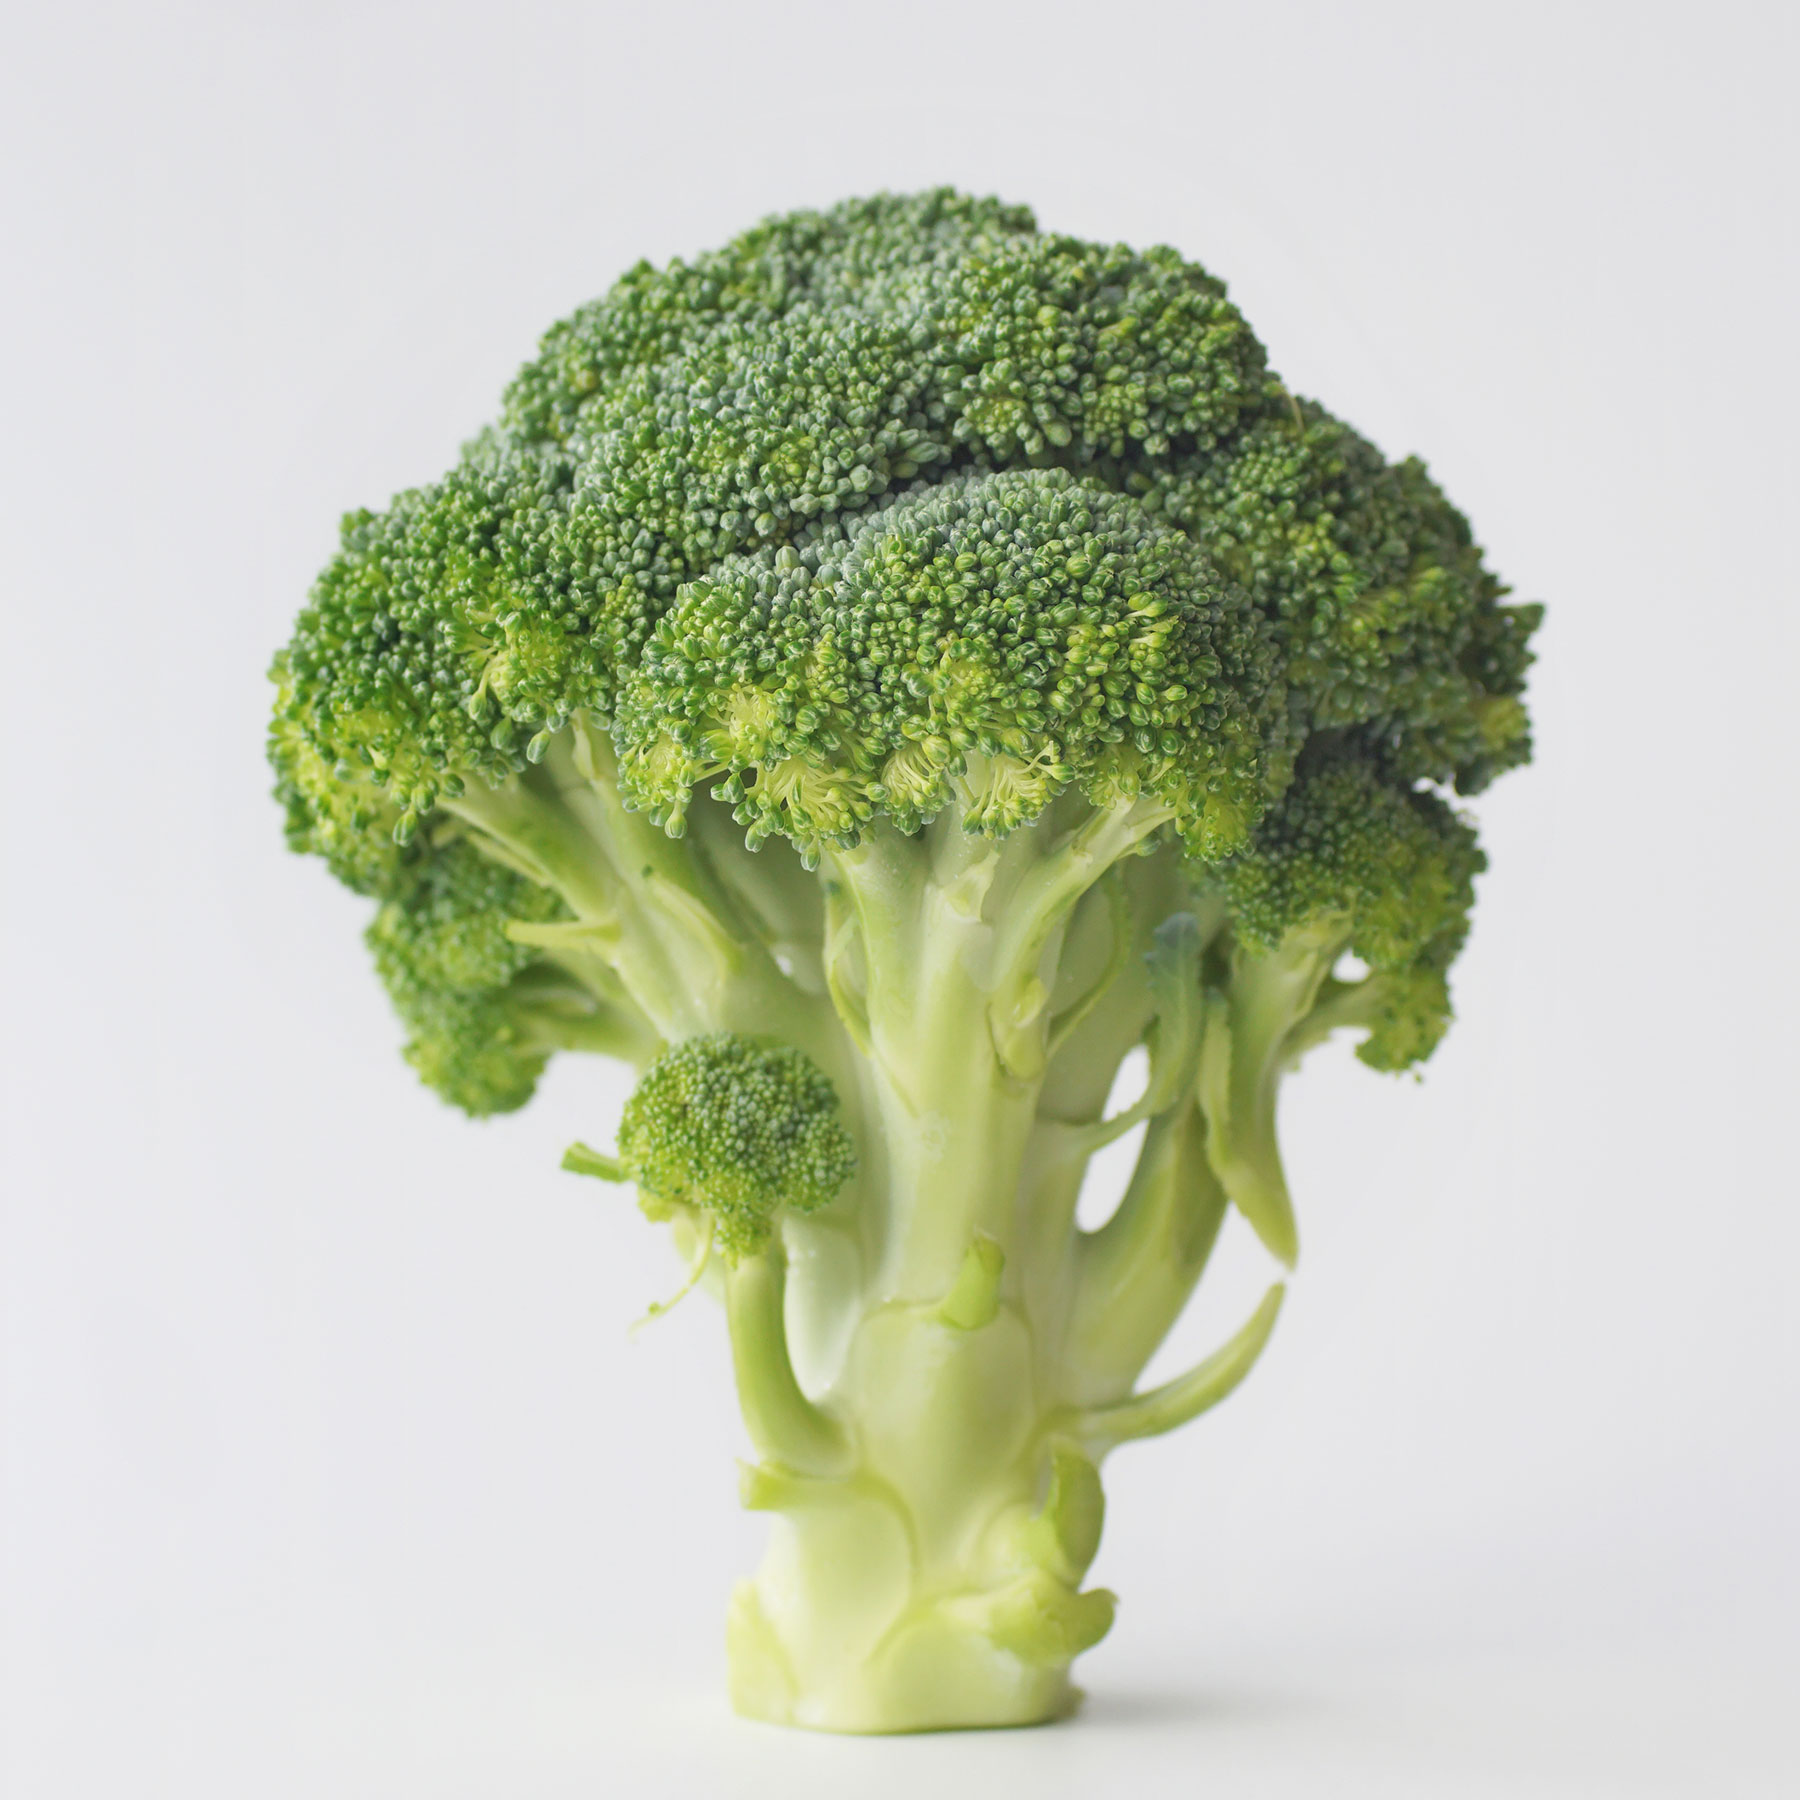 Superfoods to Know About: Broccoli